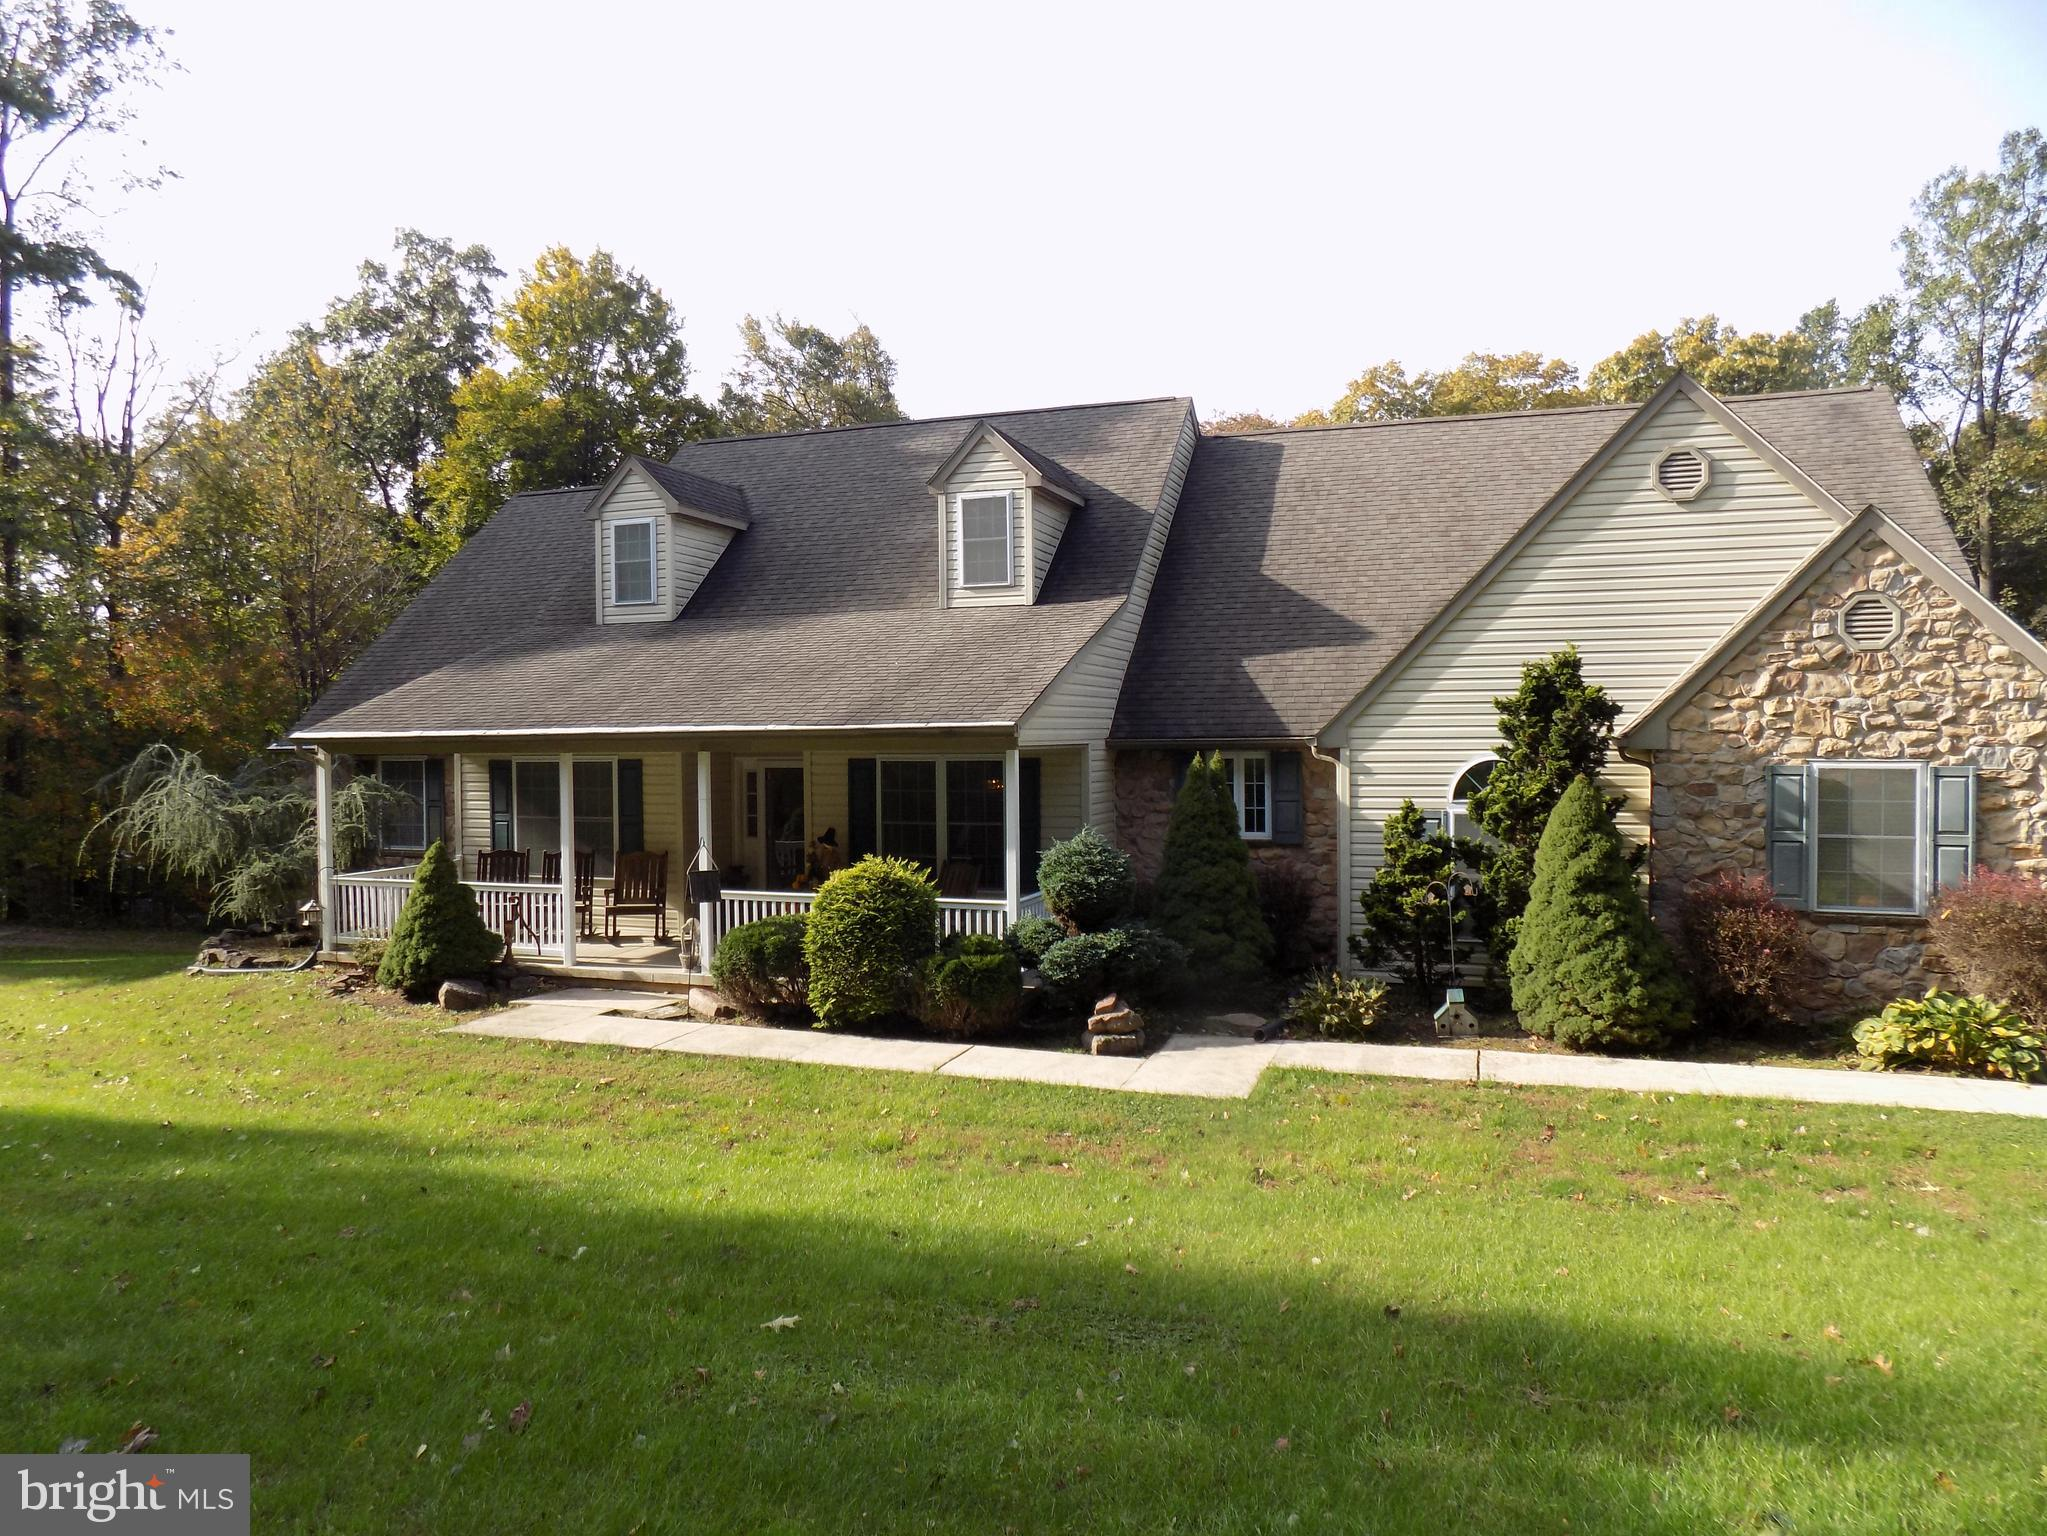 330 MOHNS HILL ROAD, REINHOLDS, PA 17569